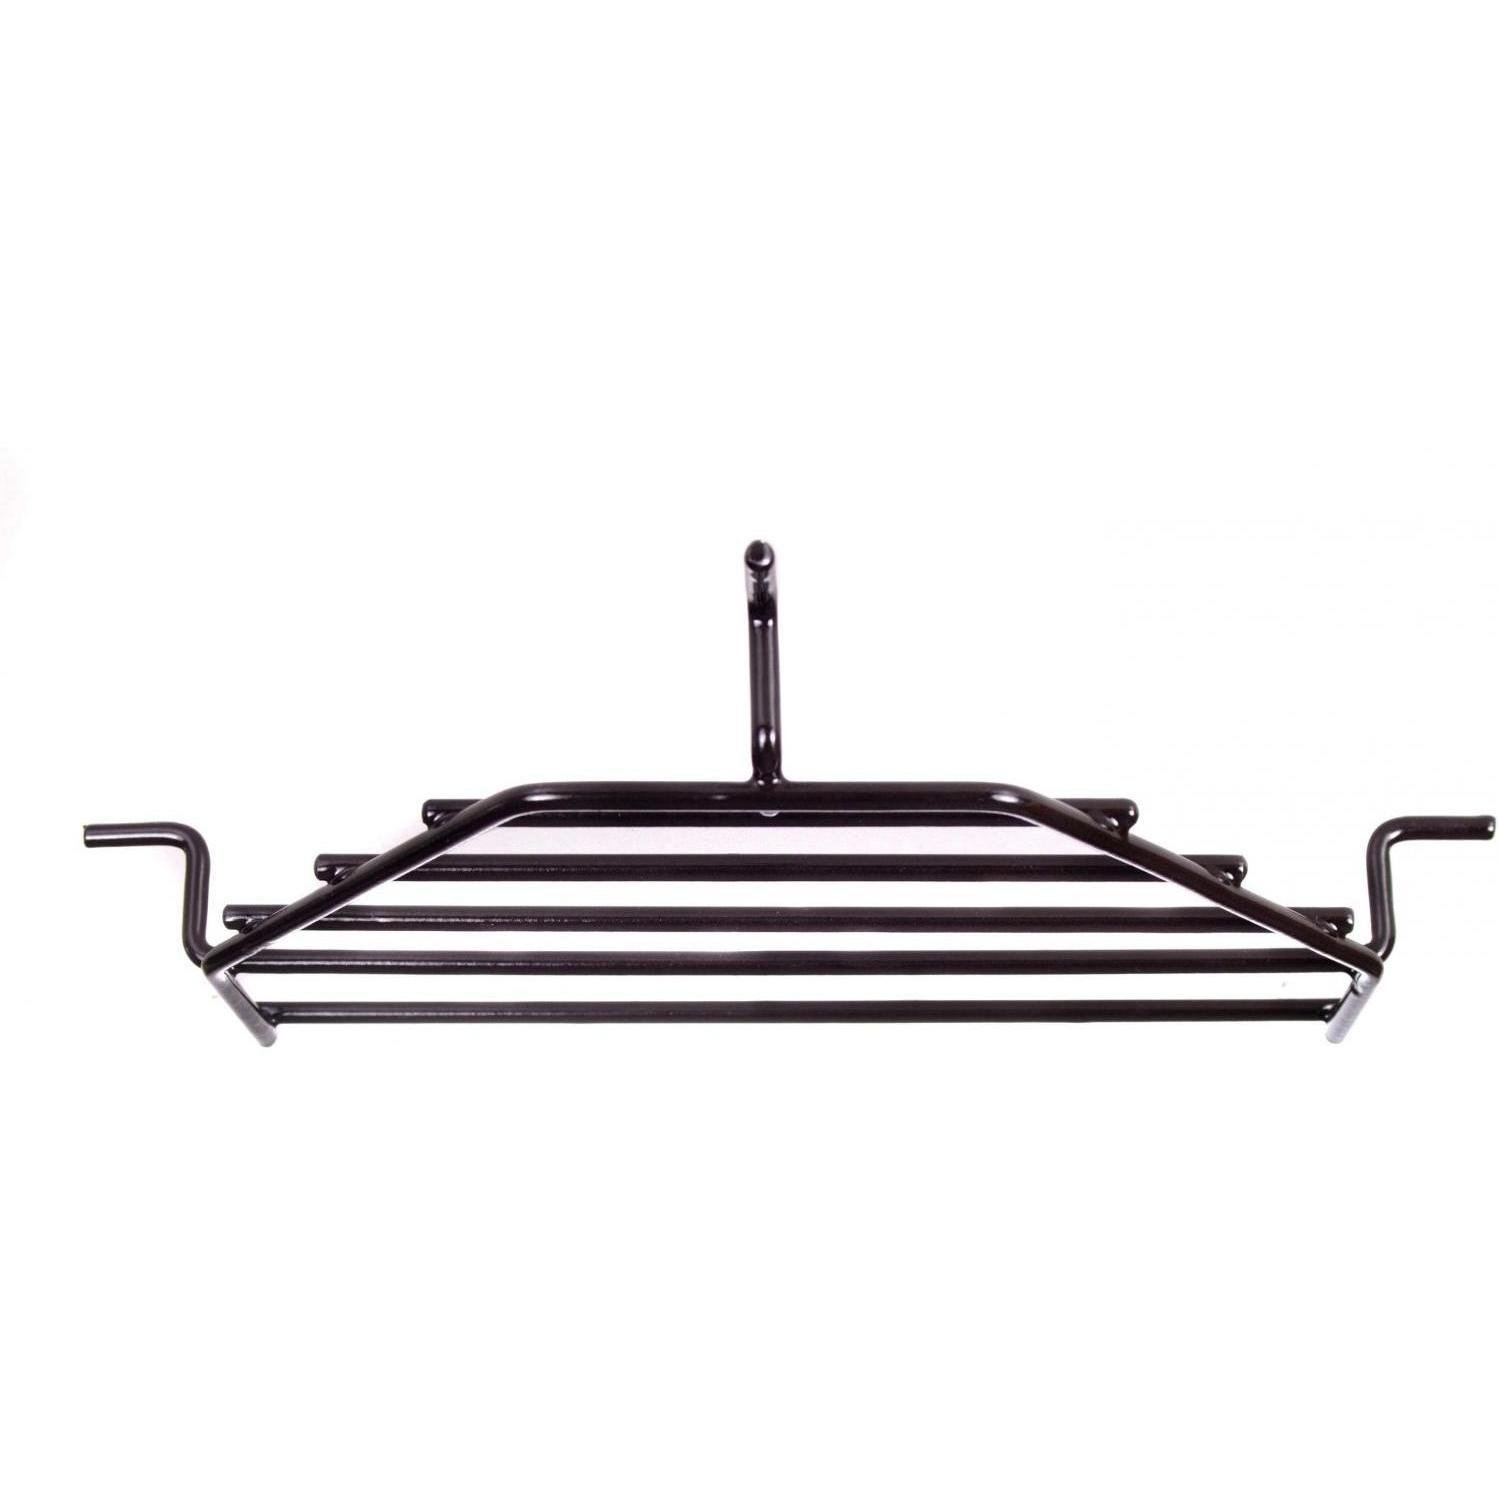 Primo 313 Roaster Drip Pan Racks for Primo Oval Junior Grill, 2 per Box by Primo